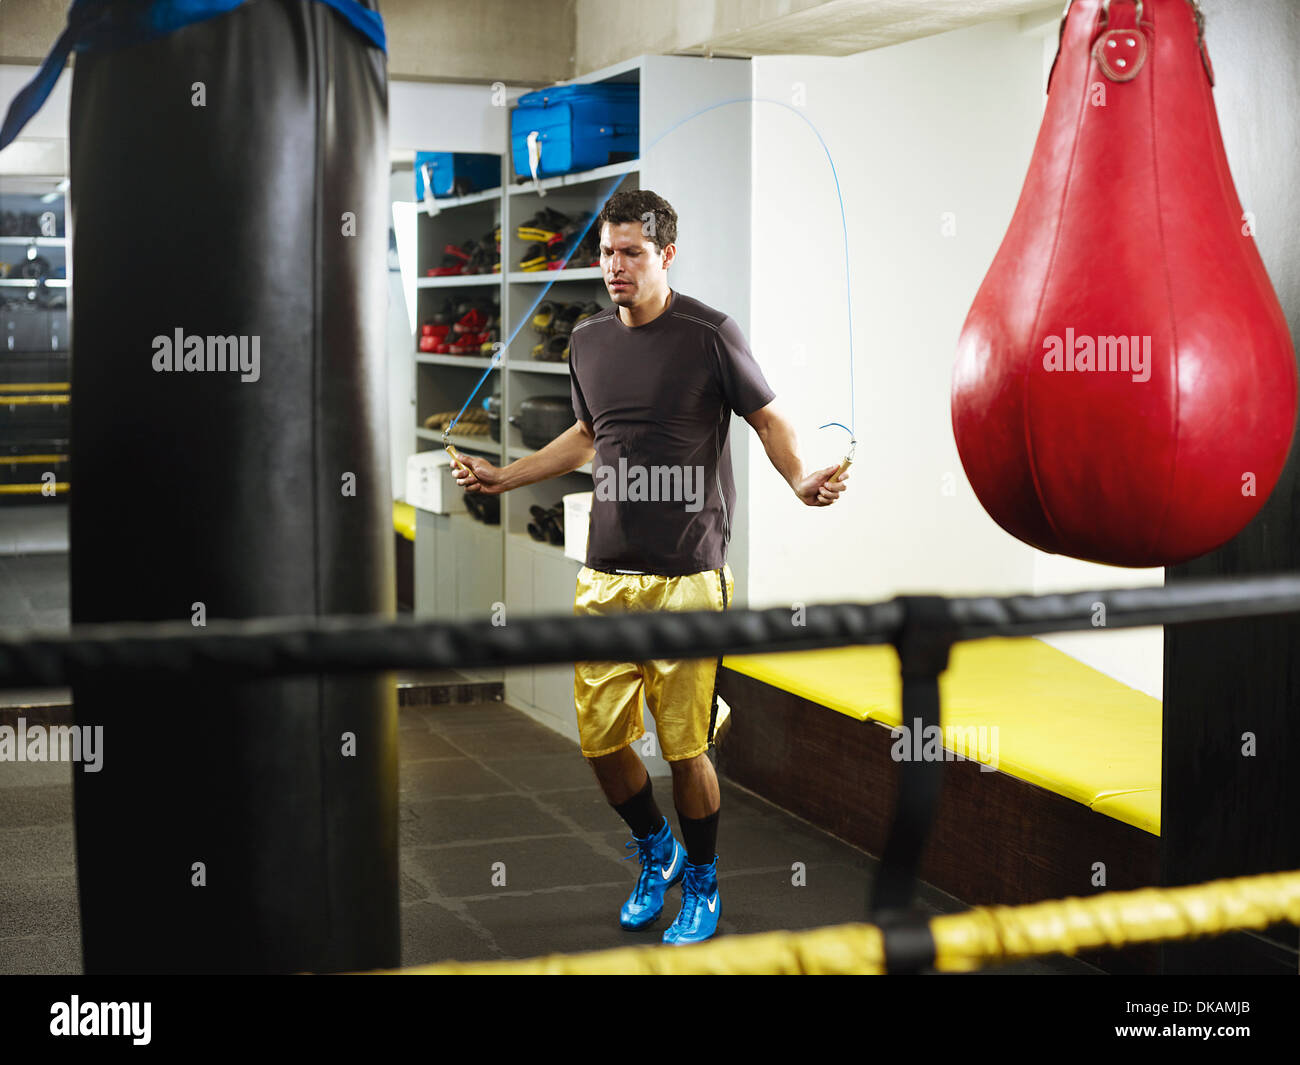 Man skipping to warm up in changing room - Stock Image